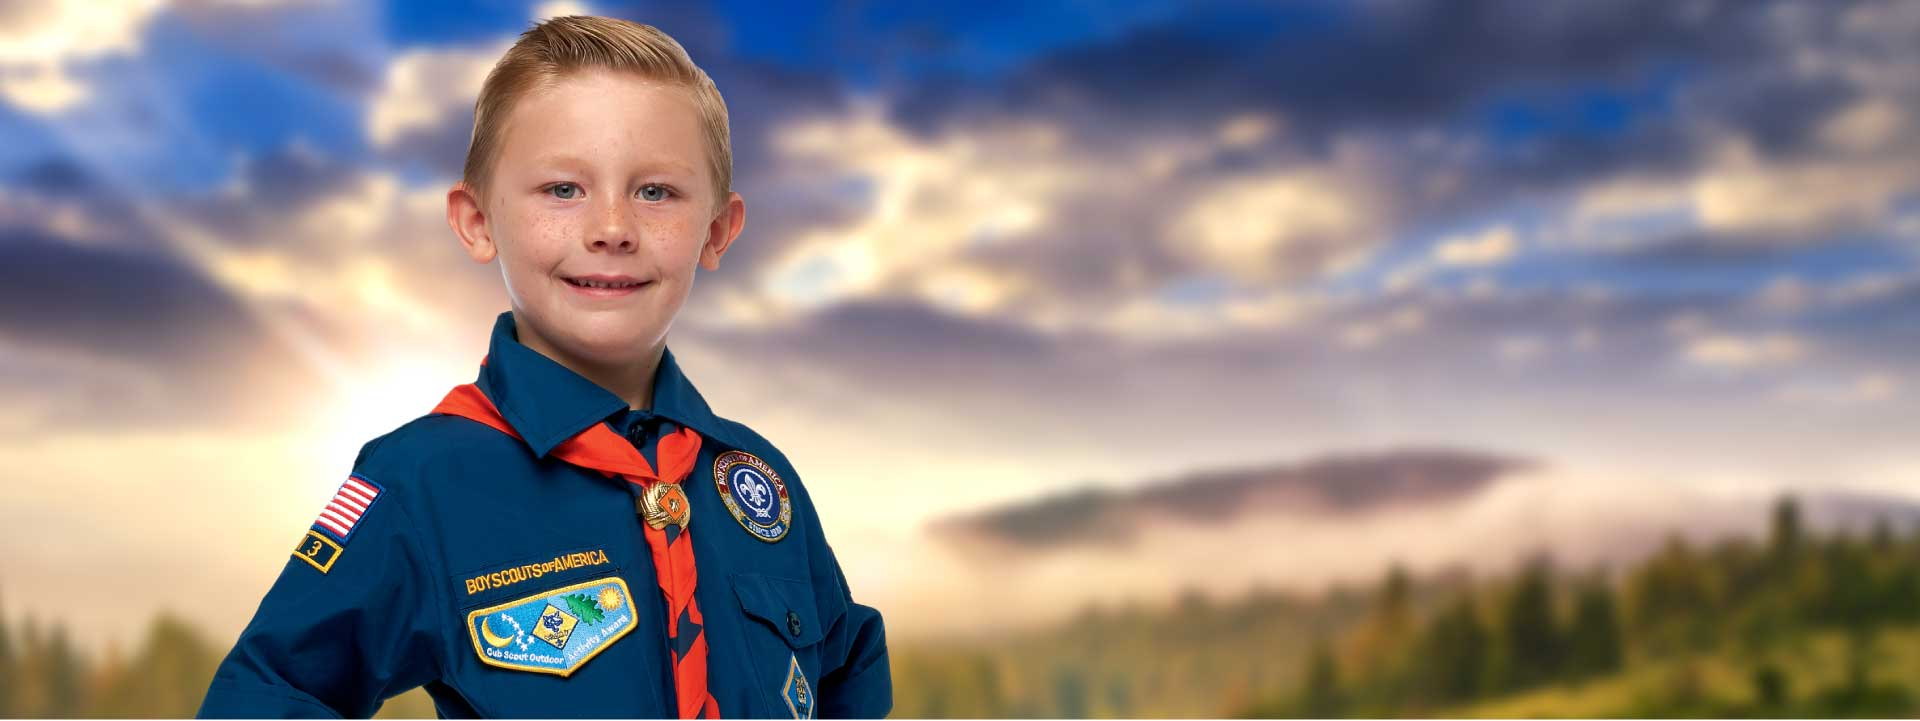 Cub Scout Tiger Banner